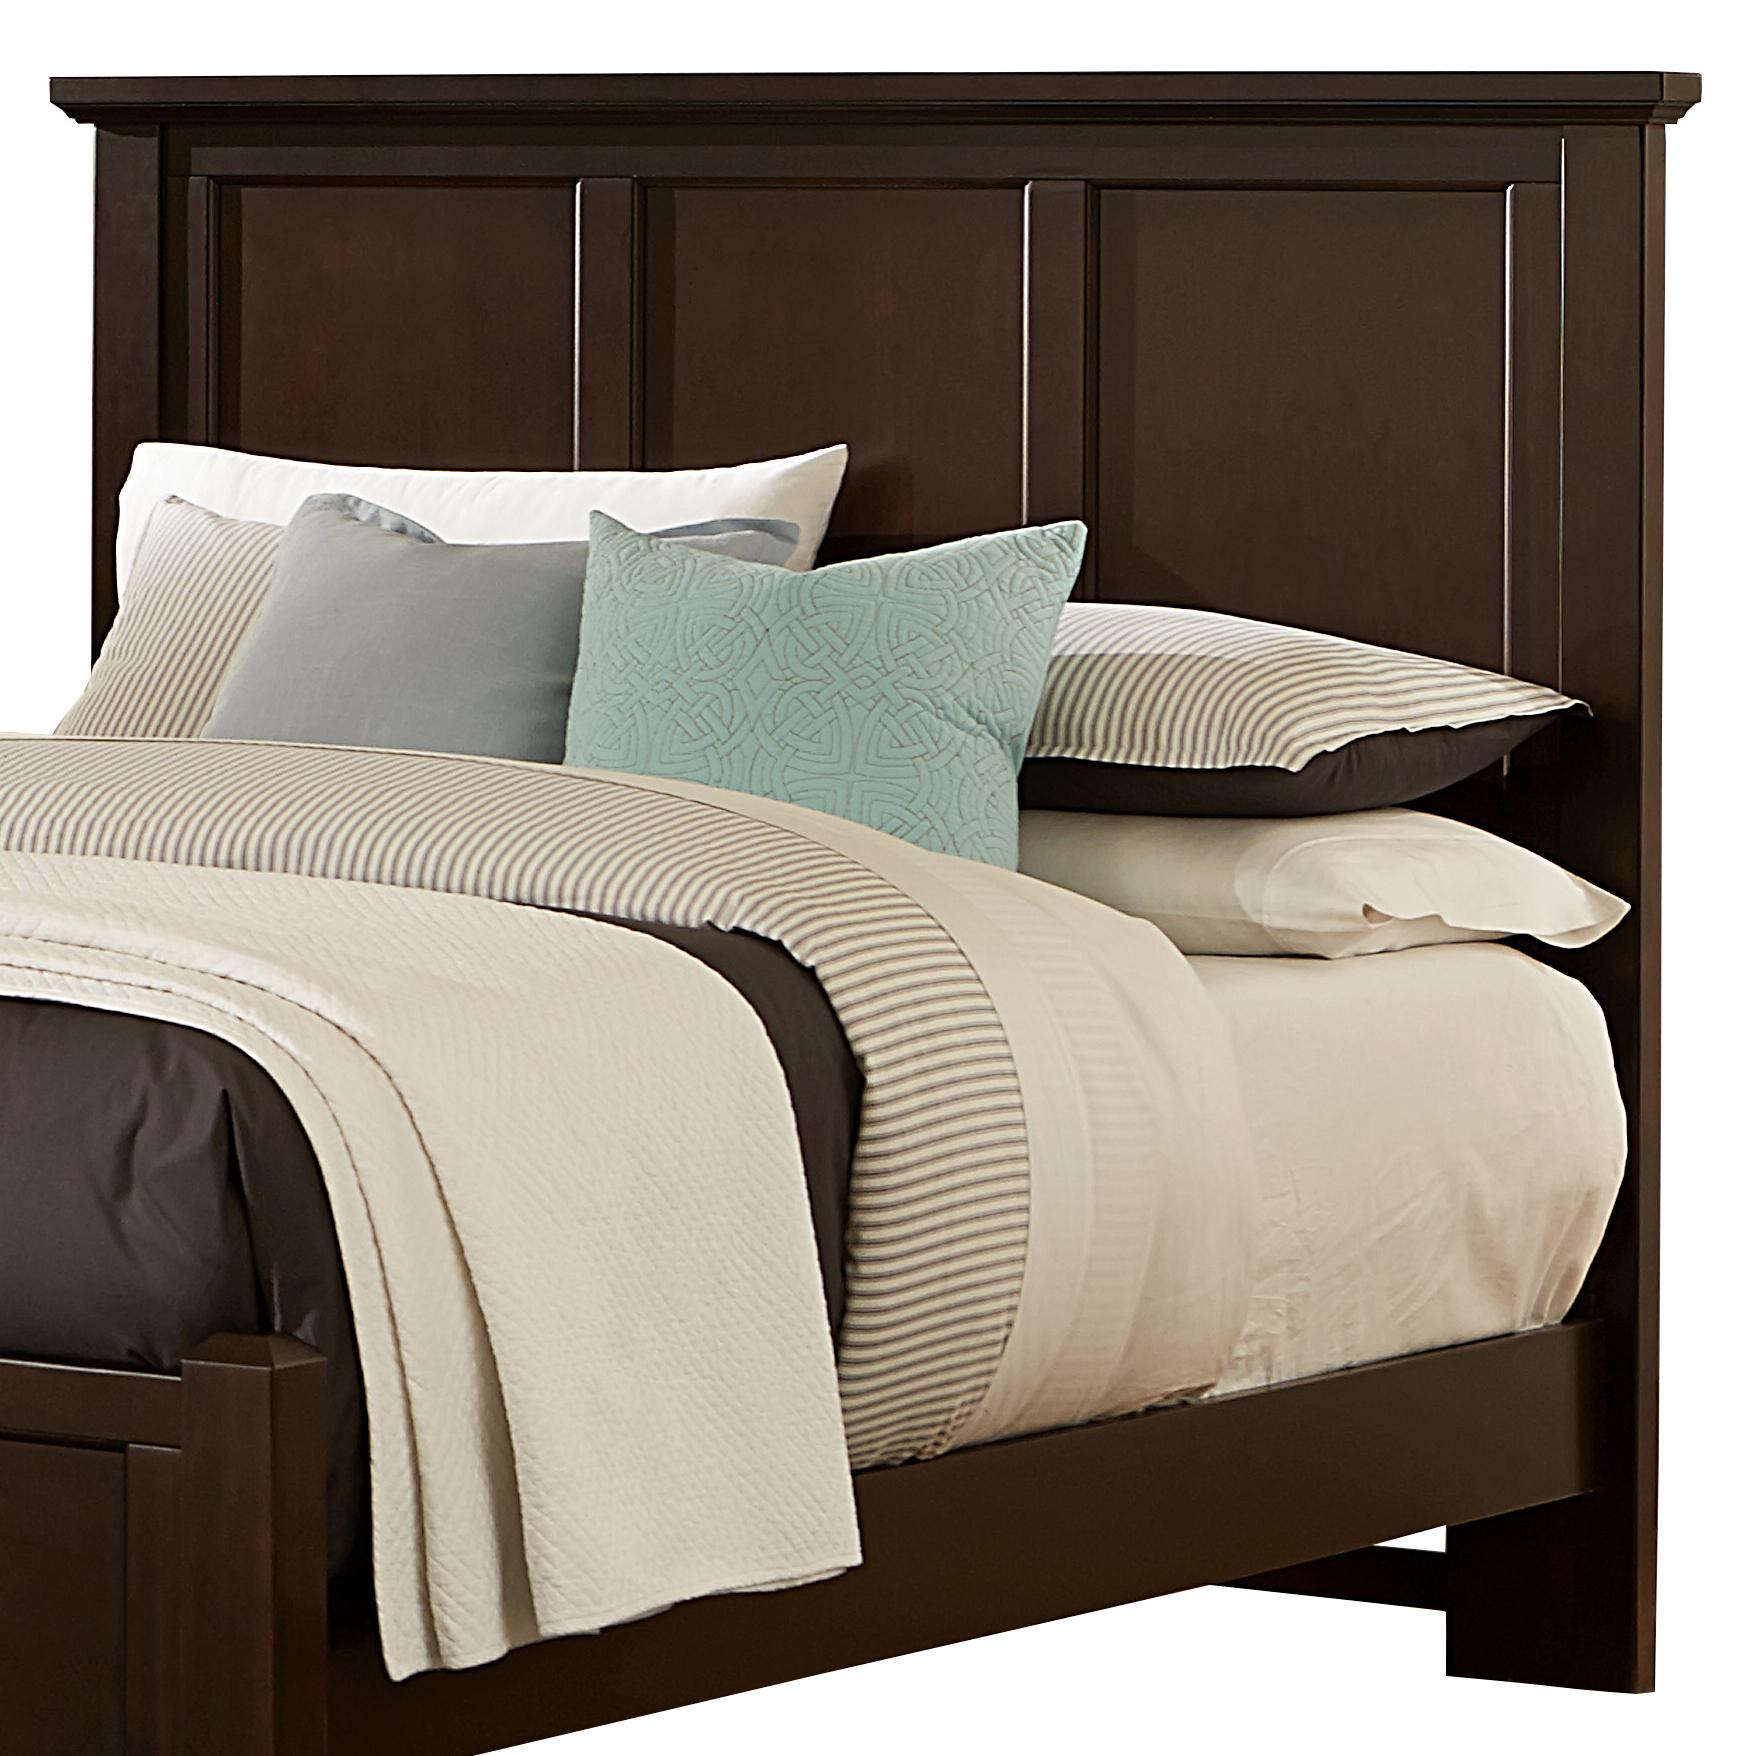 Full/Queen Mansion Headboard